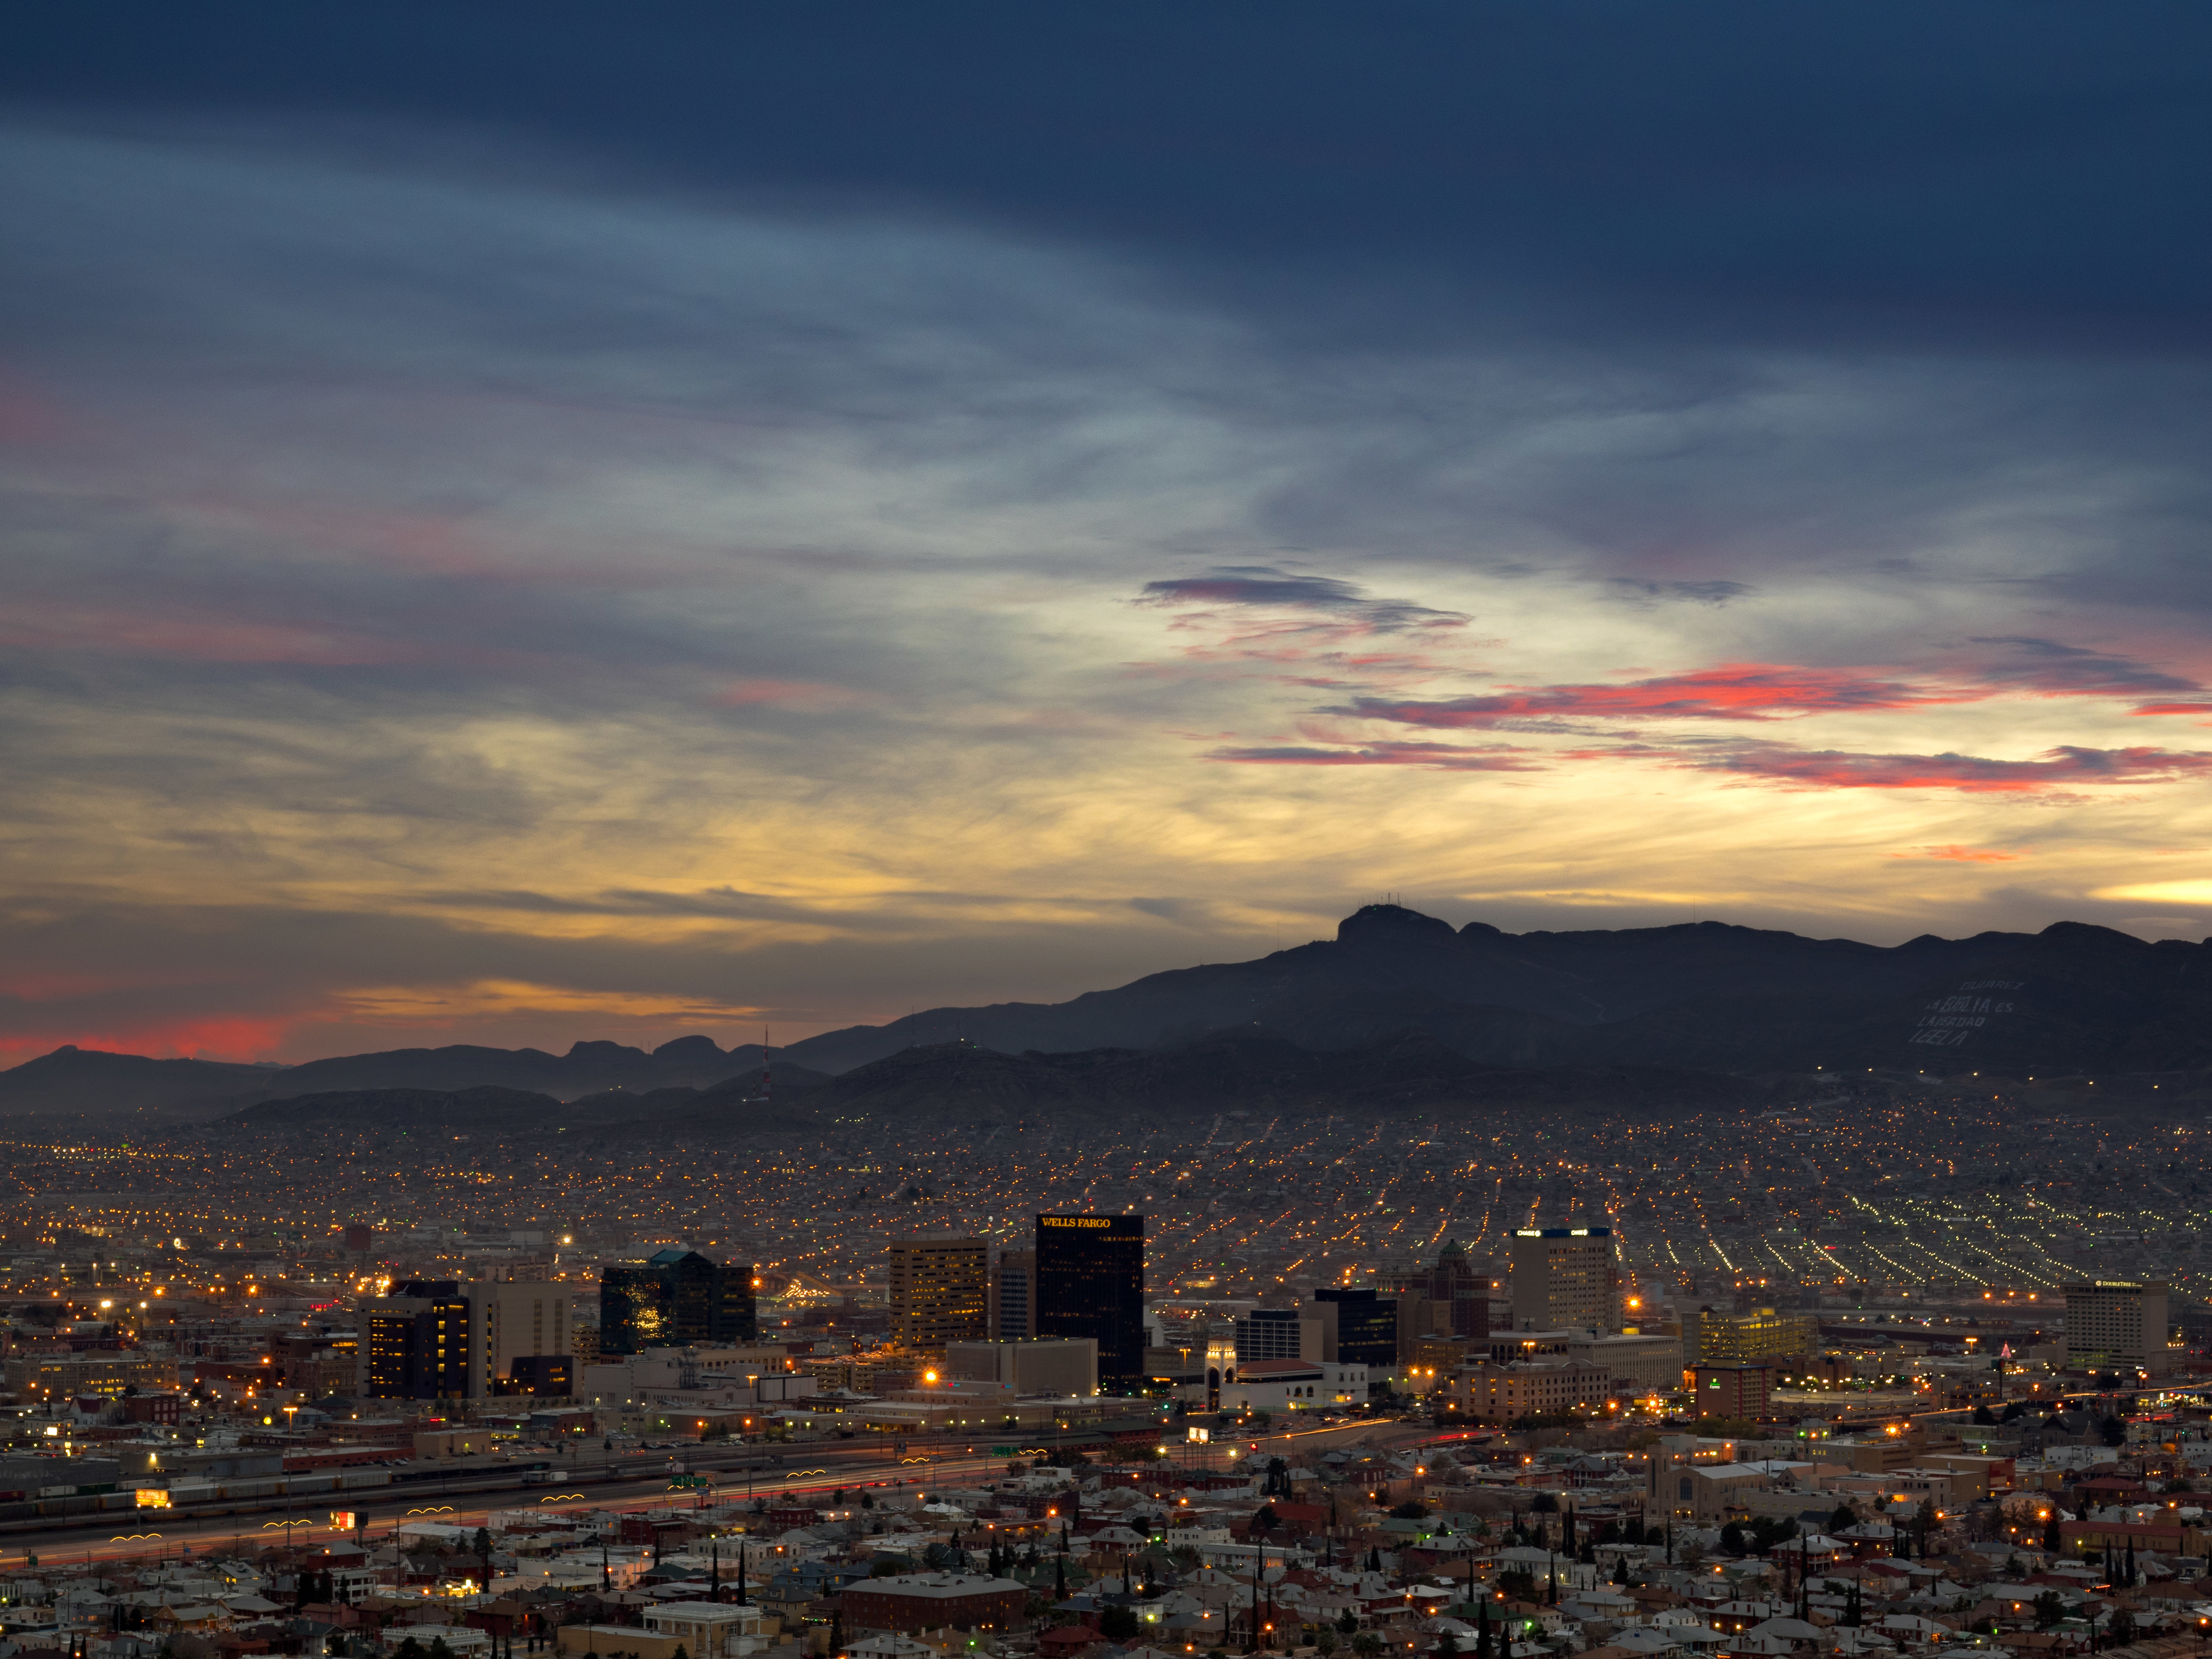 El-Paso-and-nearby-mountains-_reduced.jpg?mtime=20200122163558#asset:107757